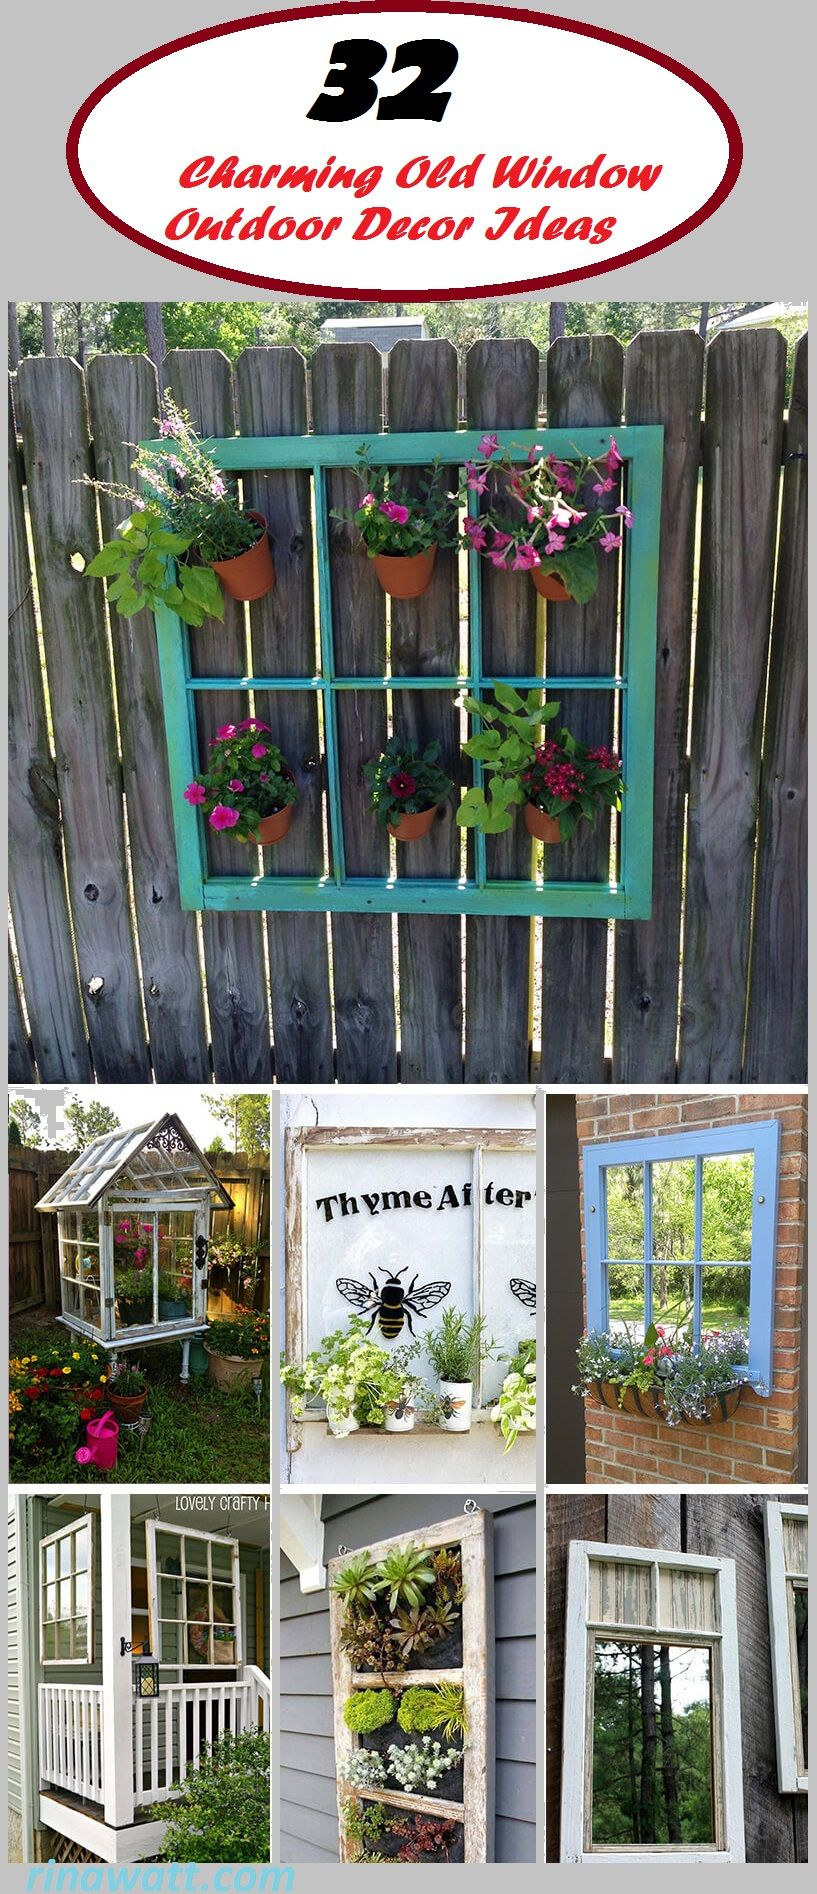 32 Charming Old Window Outdoor Decor Ideas To Accent Your Space 1 Window Frame For Hanging Plant Outdoor Window Decor Window Frame Decor Hanging Plants Diy